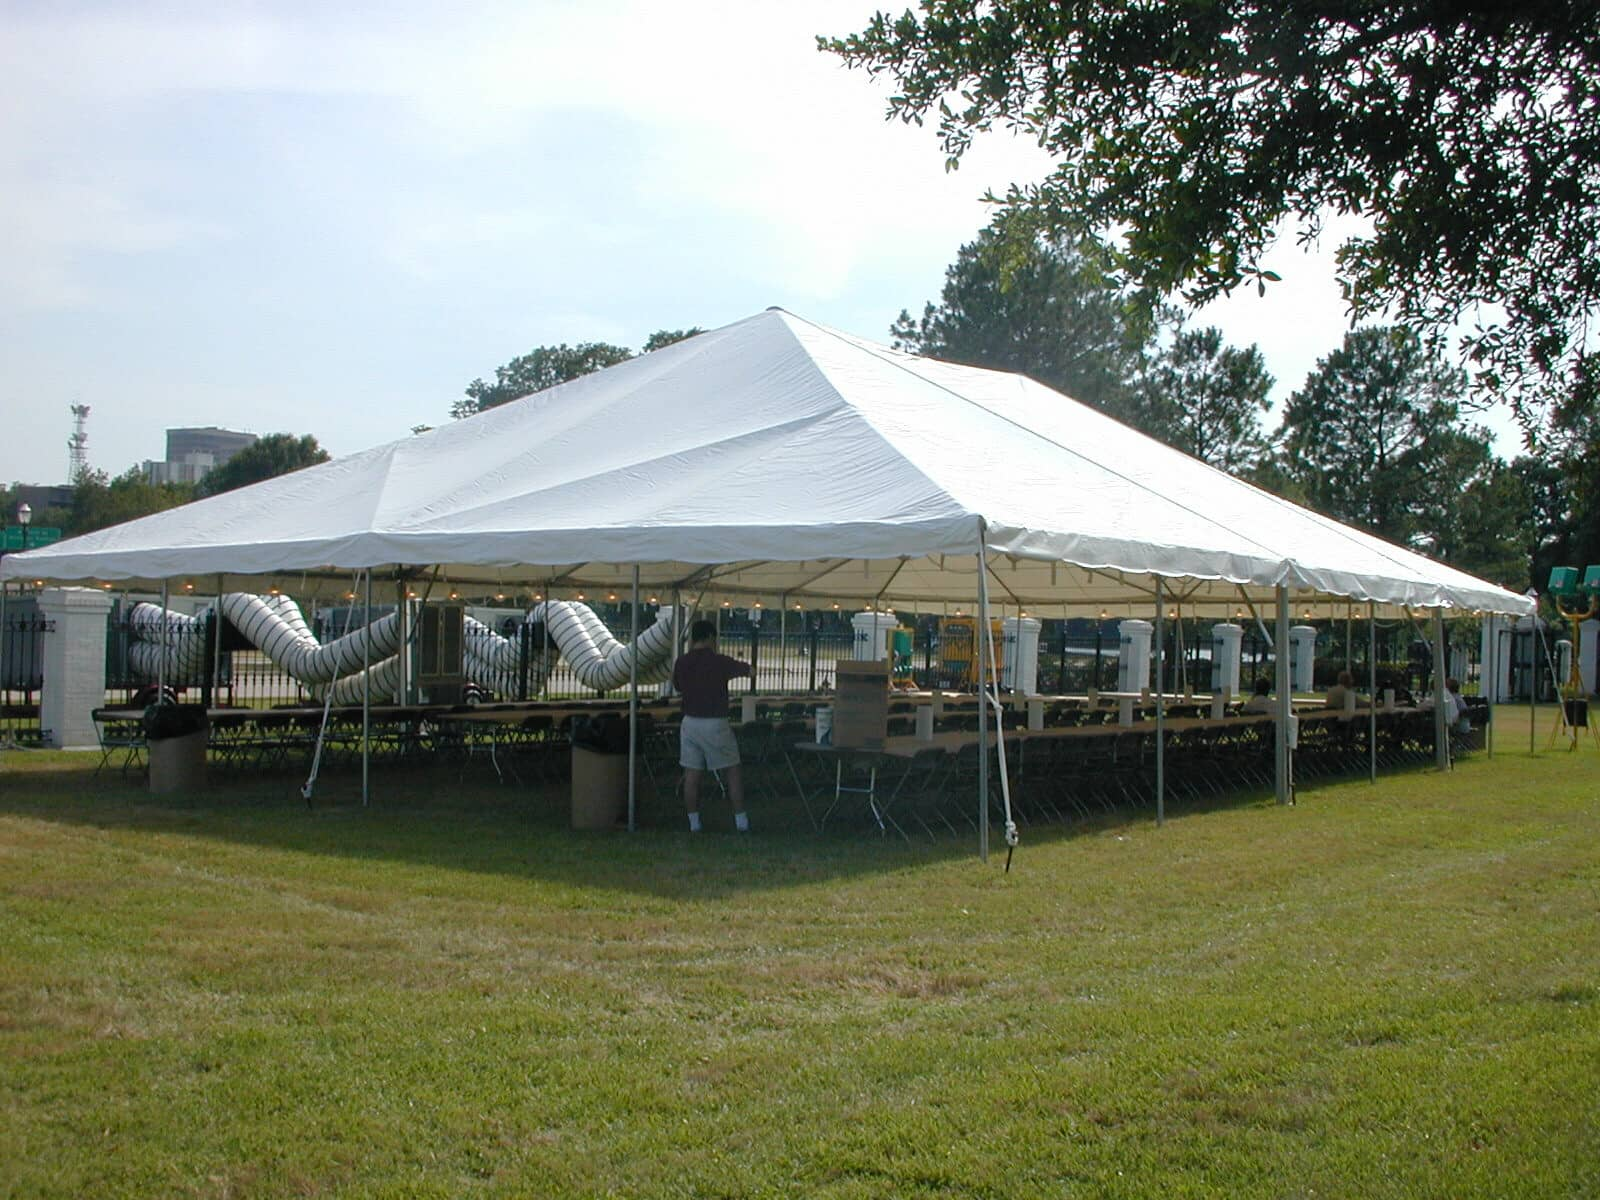 40' x 60' Frame Tent tent